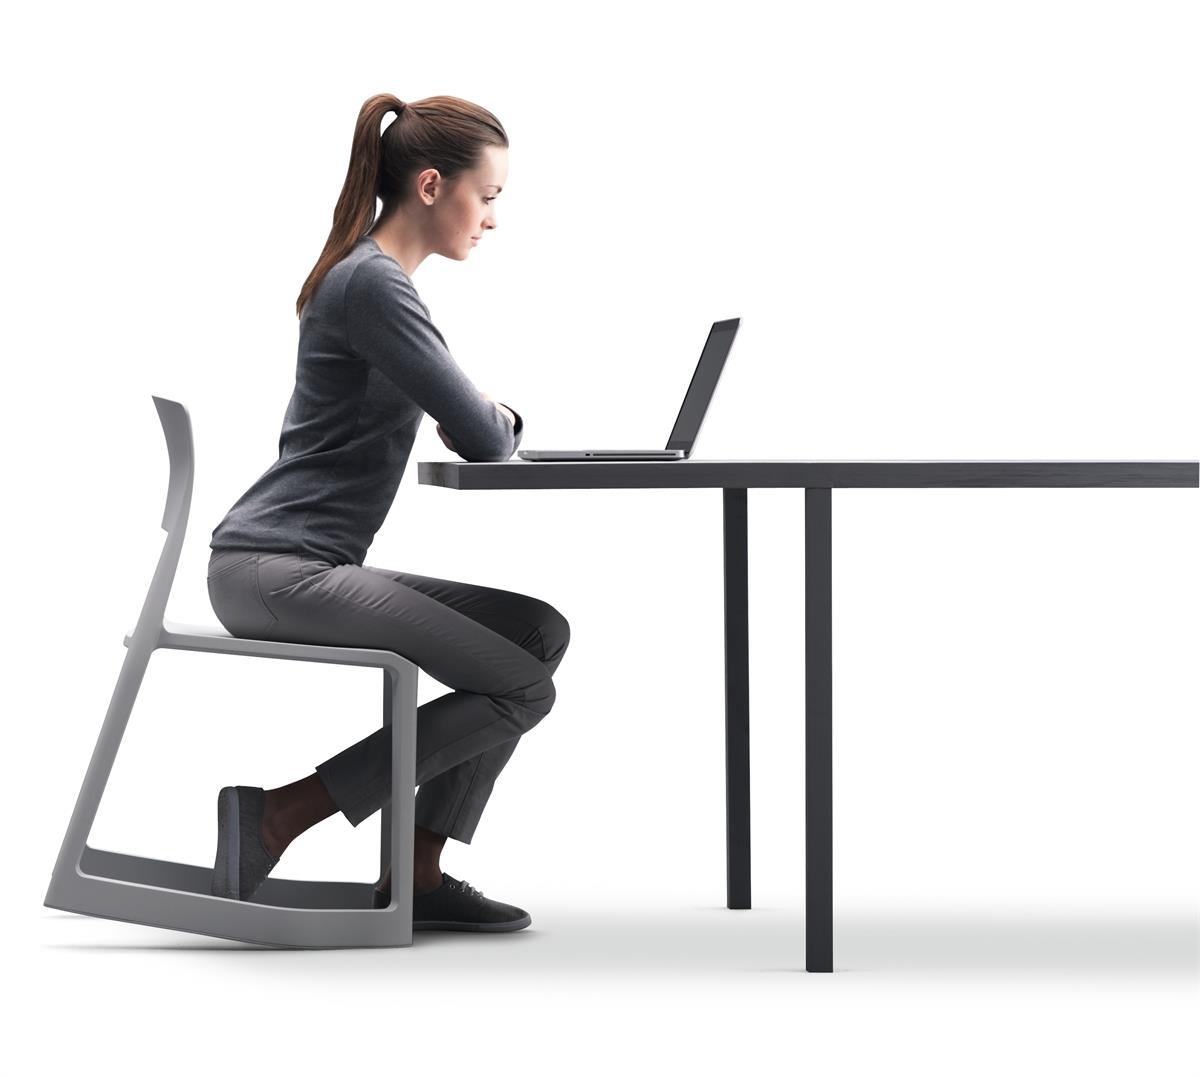 tip ton chair  for $345 assists with posture and provides your body movement while sitting